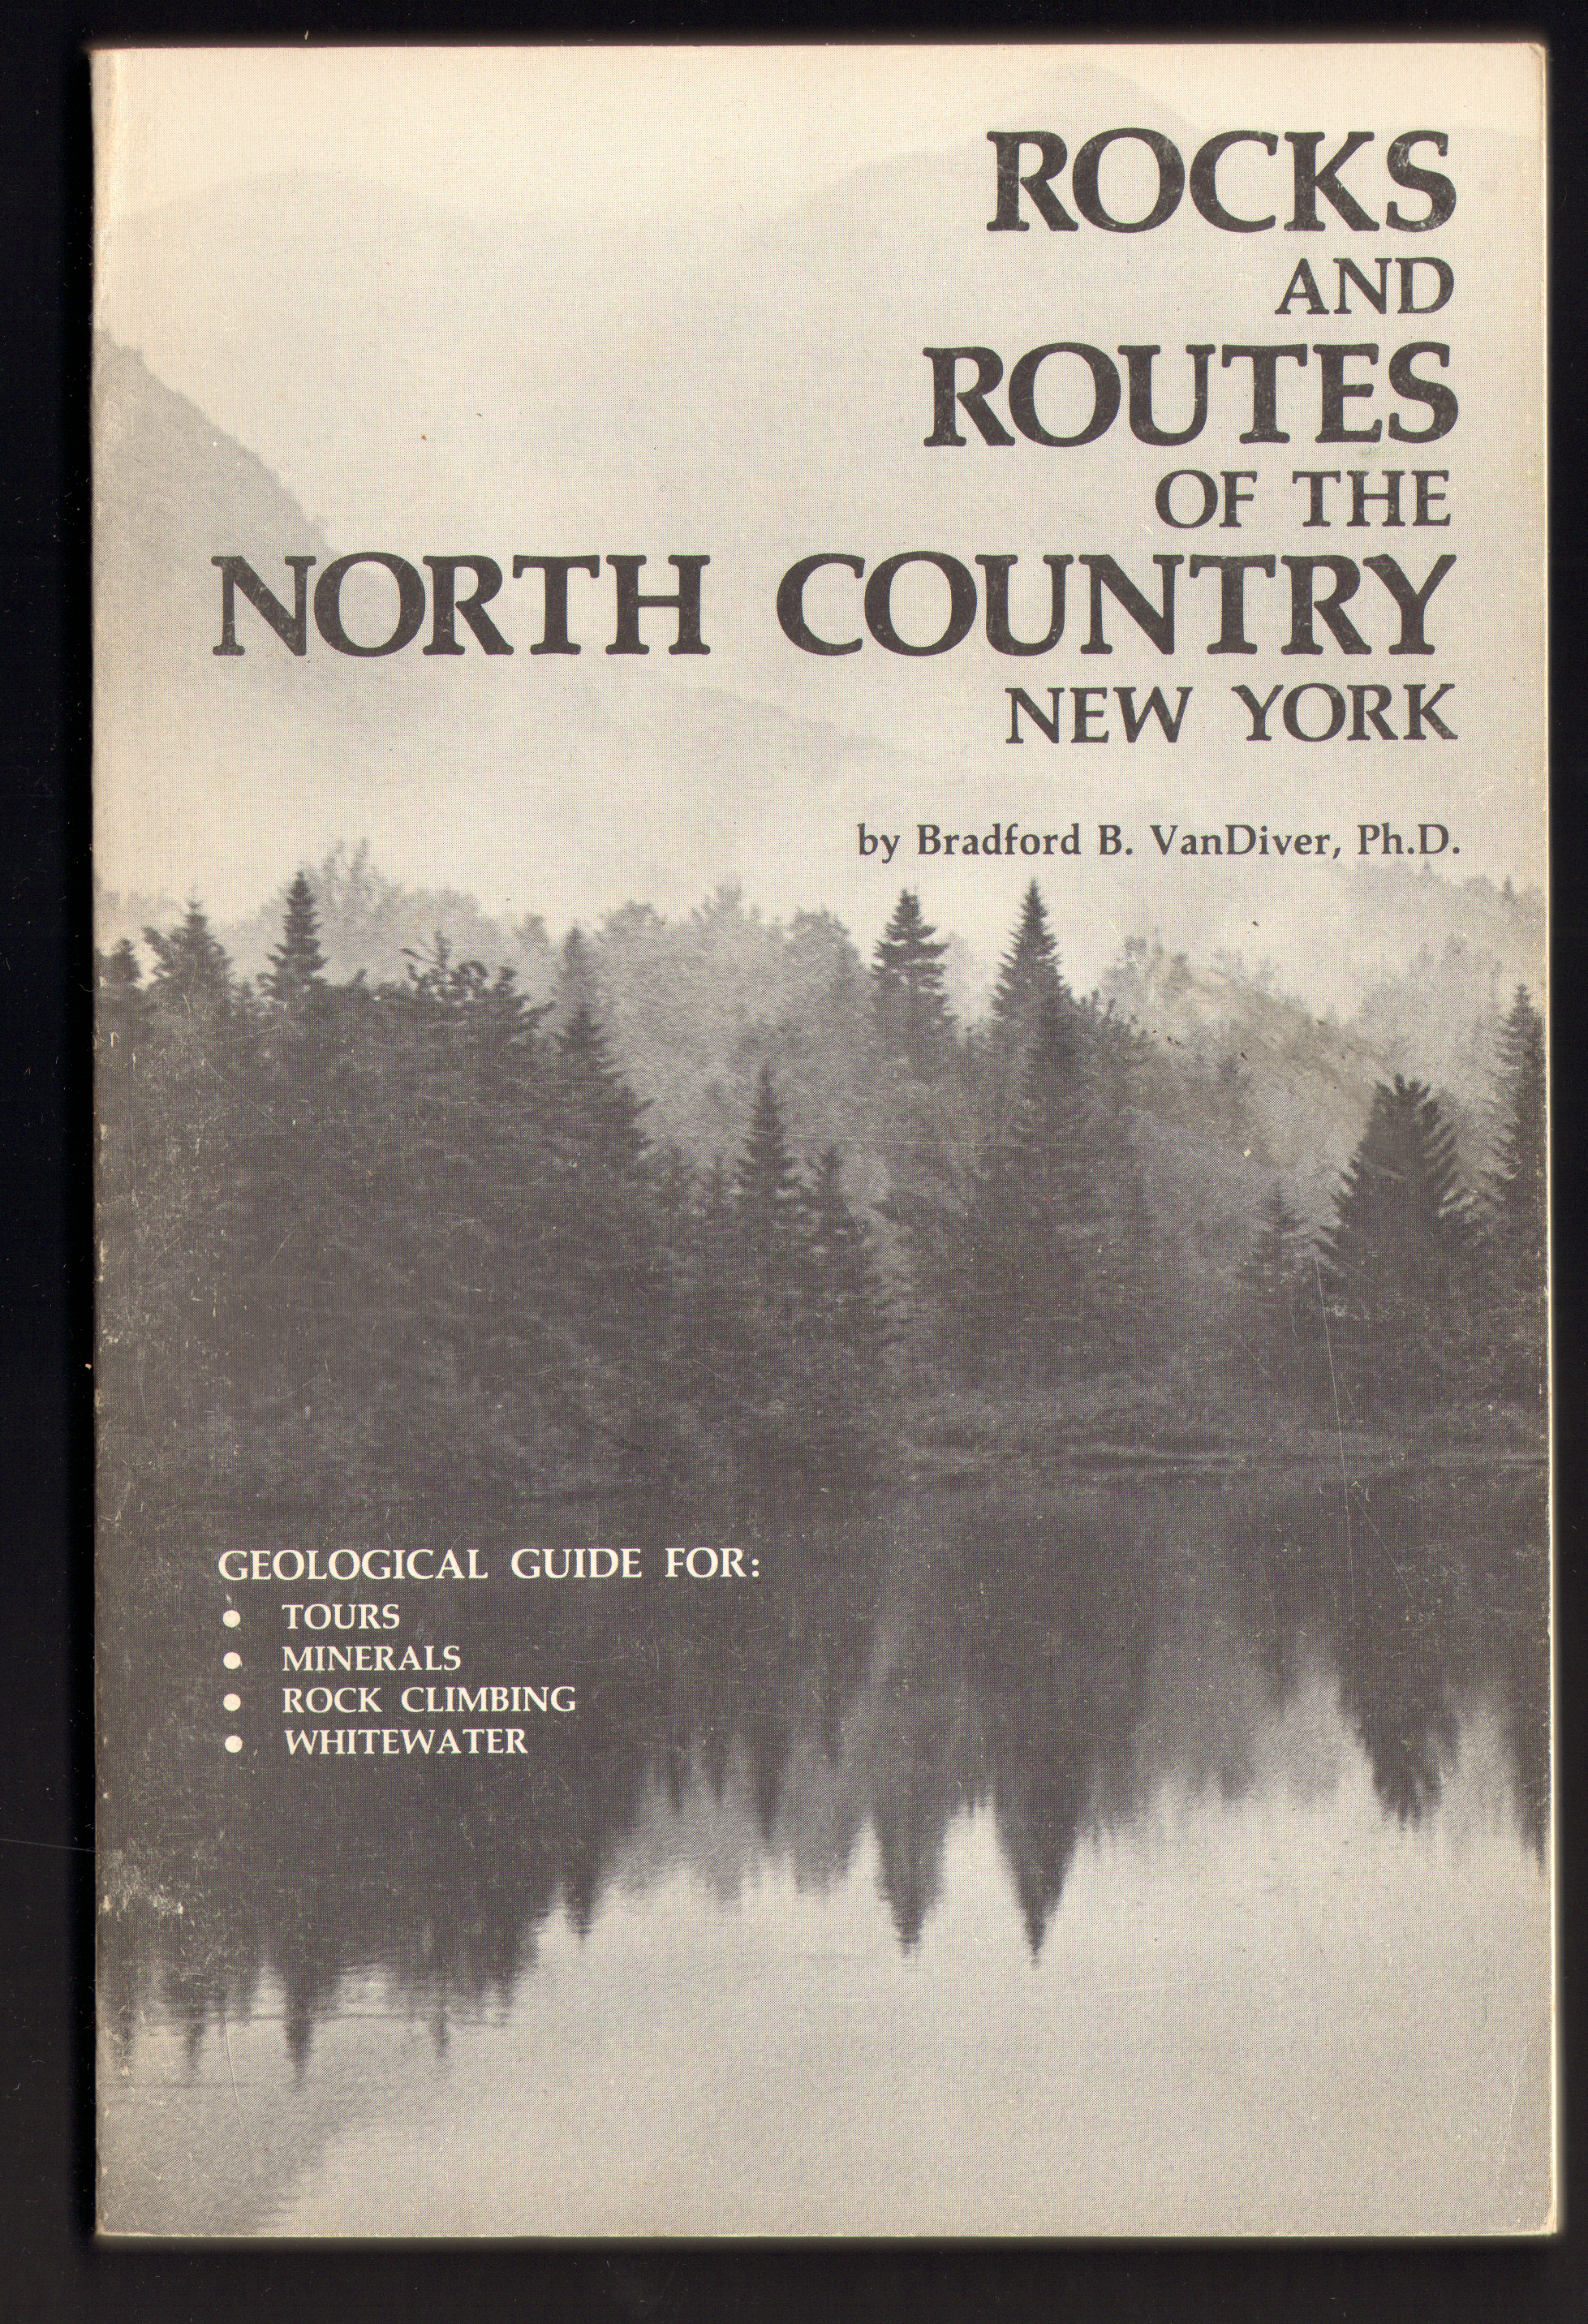 Image for Rocks and Routes of the North Country, New York: Geological guide for tours, minerals, rock climbing, whitewater